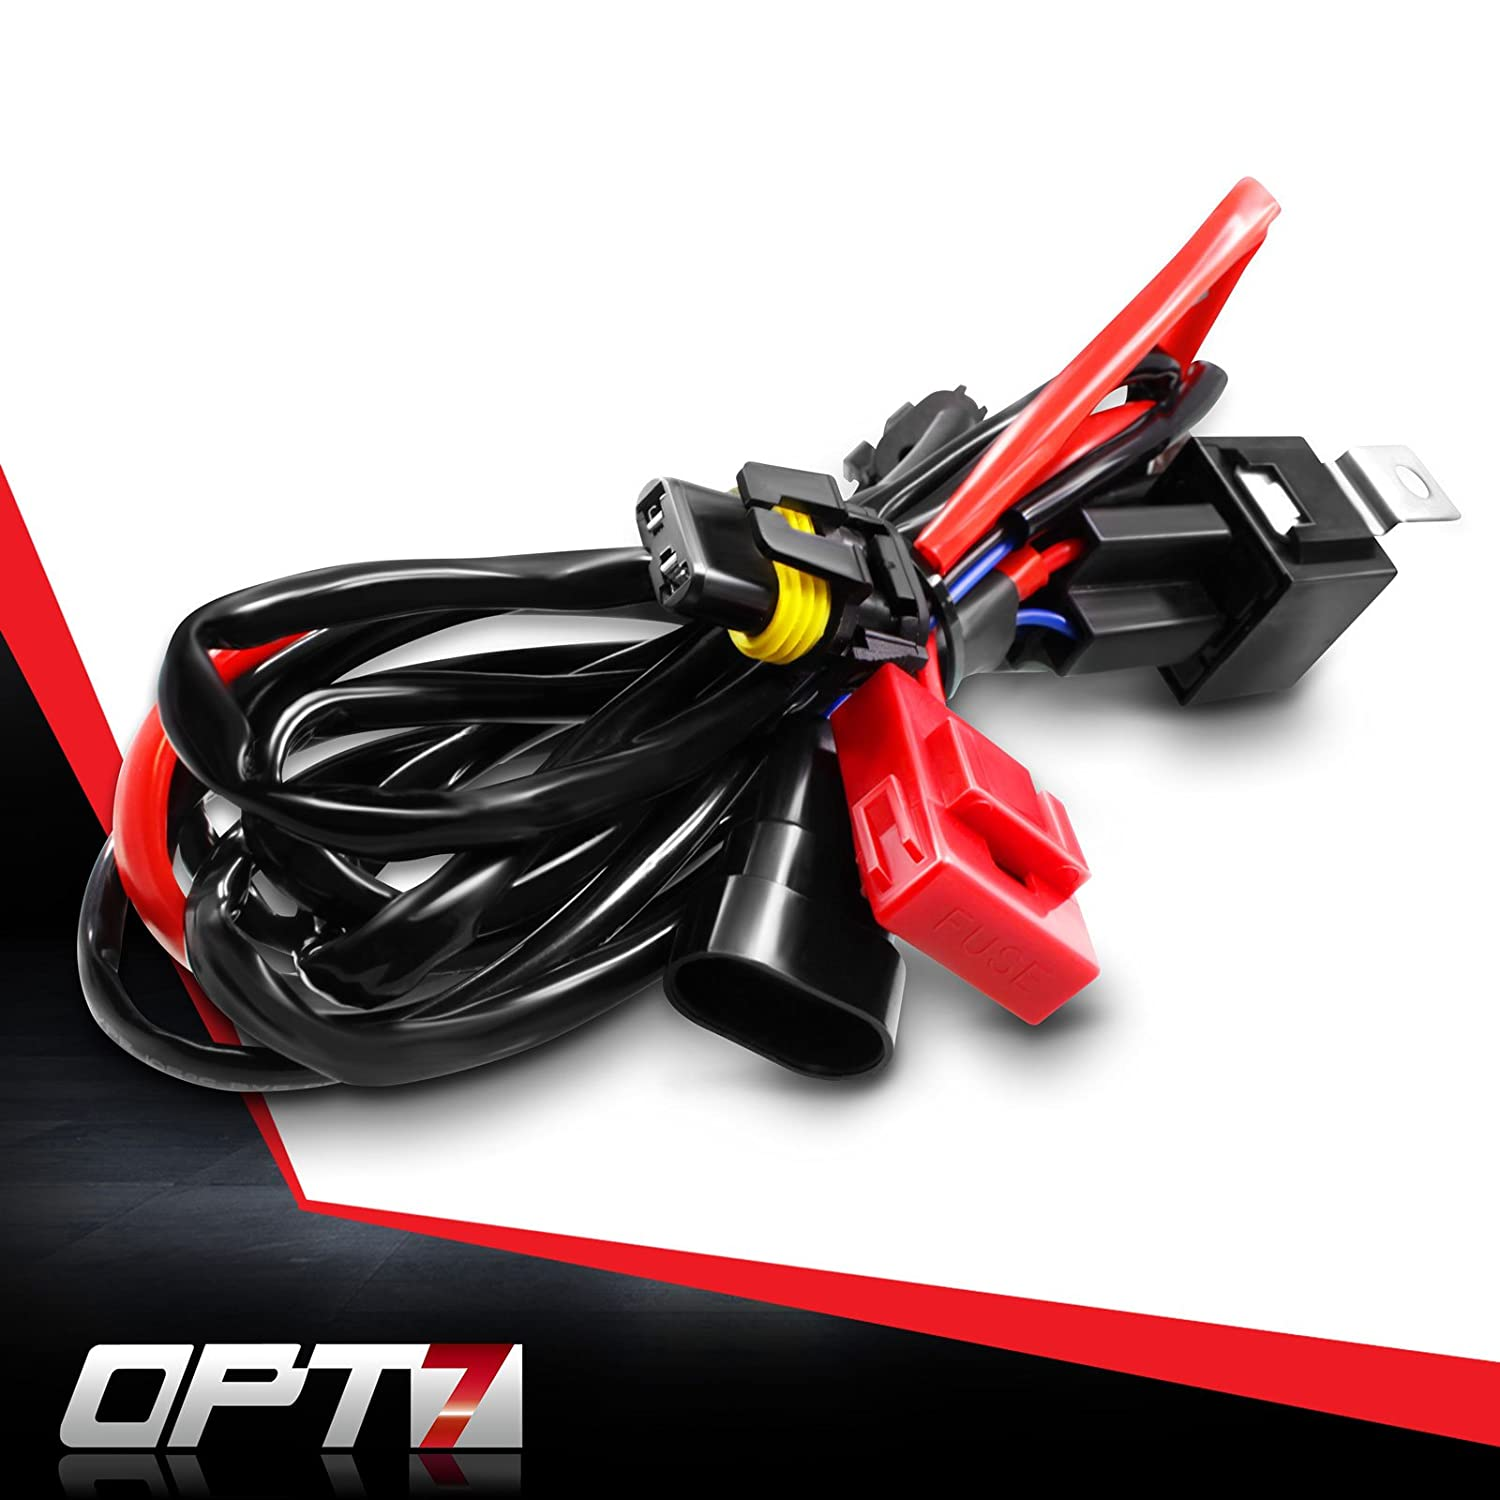 Opt7 Hid Relay Harness Anti Flicker Power Wiring For 1991 Jeep Cherokee Sport Headlight Xenon Kits Automotive